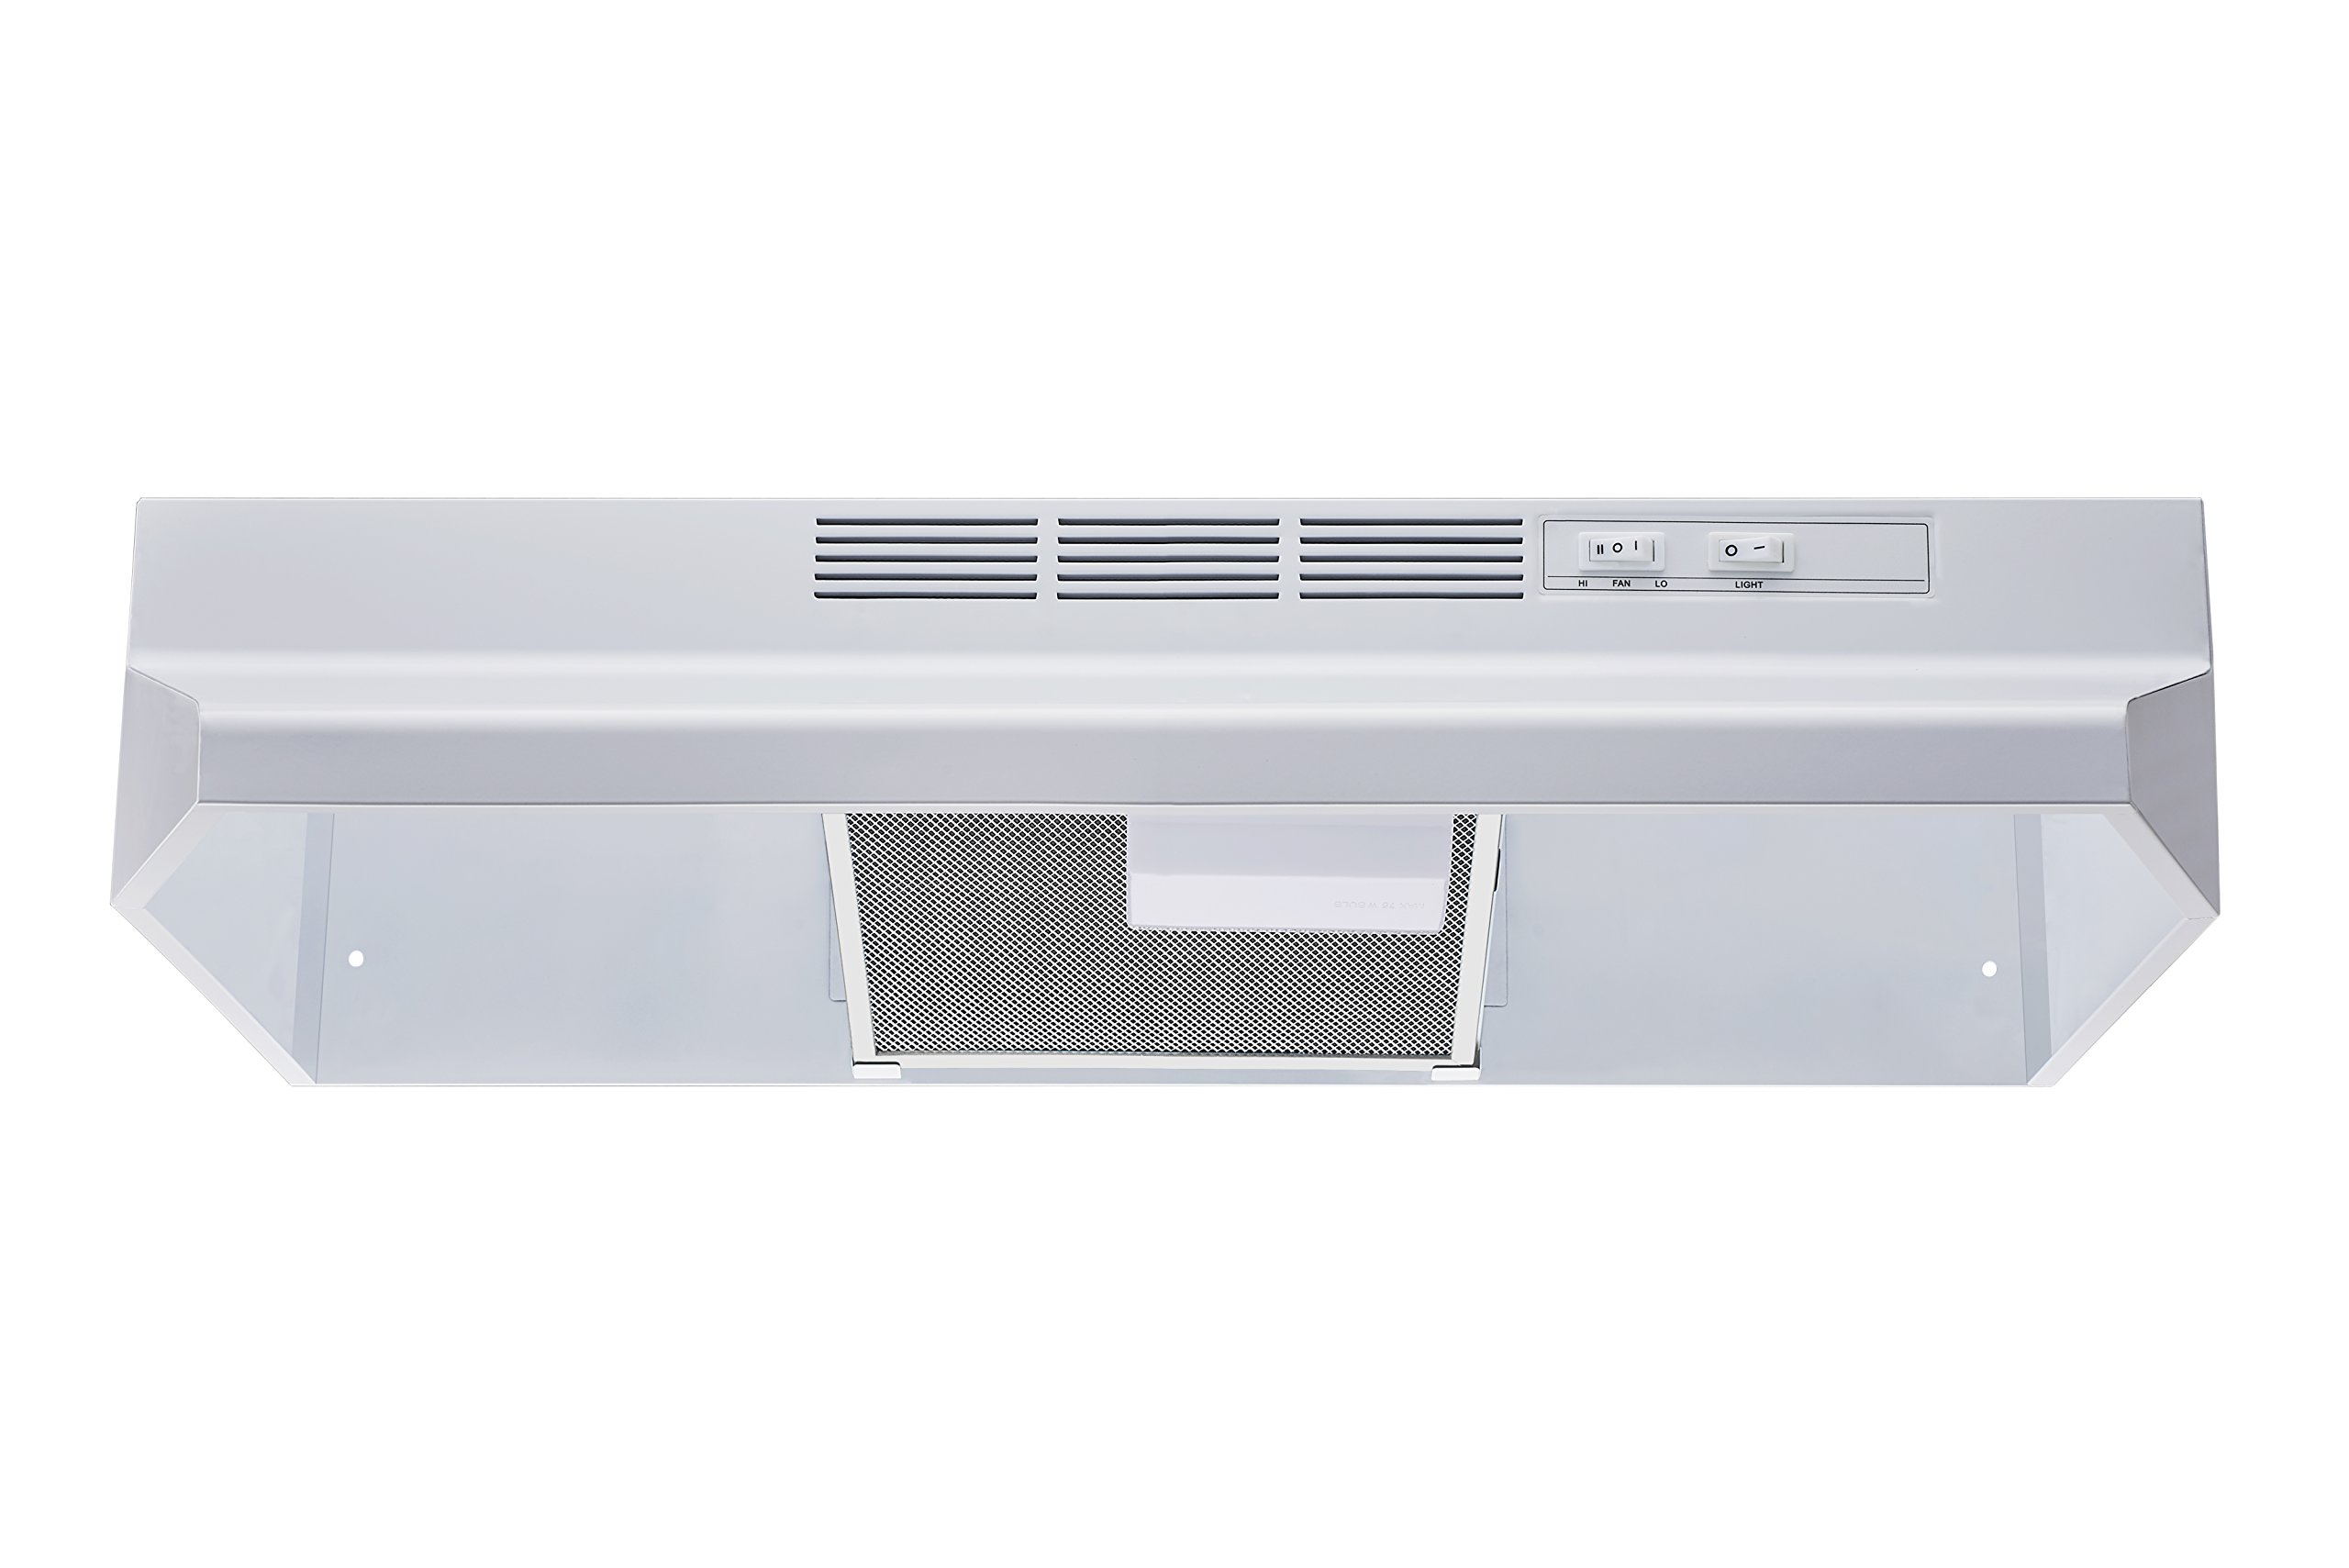 Winflo New 30'' Ductless/Non-Ducted Under Cabinet Range Hood in White Color with Mesh Charcoal Filter